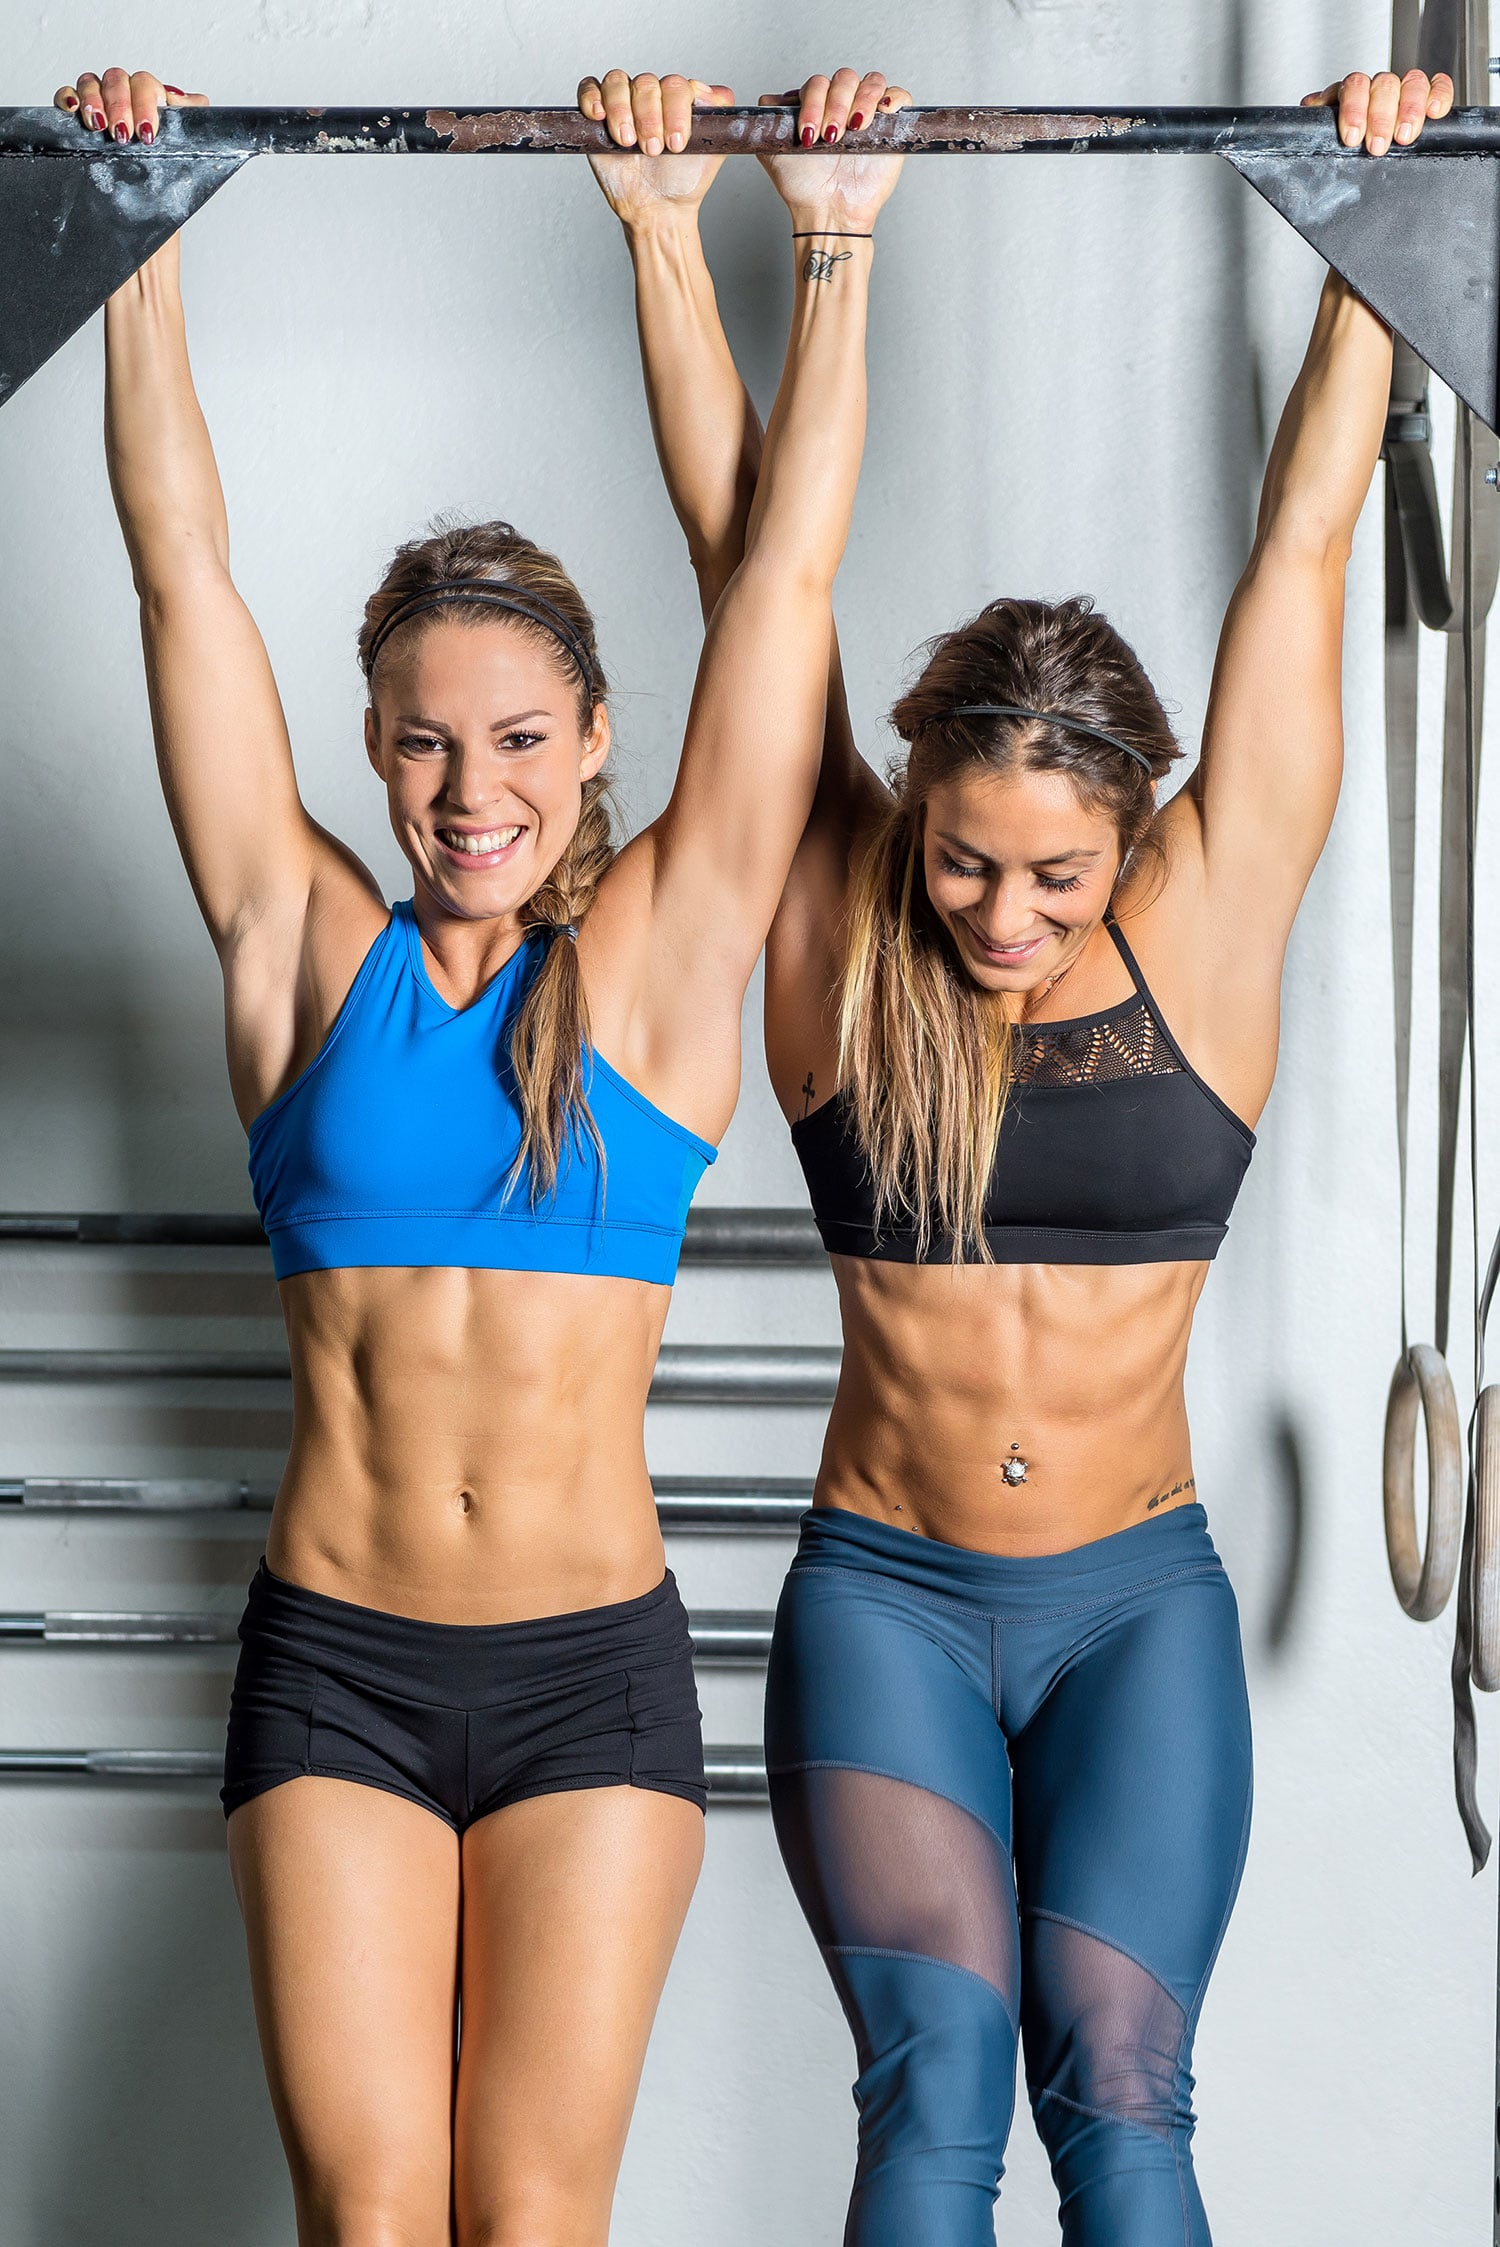 What Body Fat Percentage Do You Need to See Abs? Experts Have the Answer